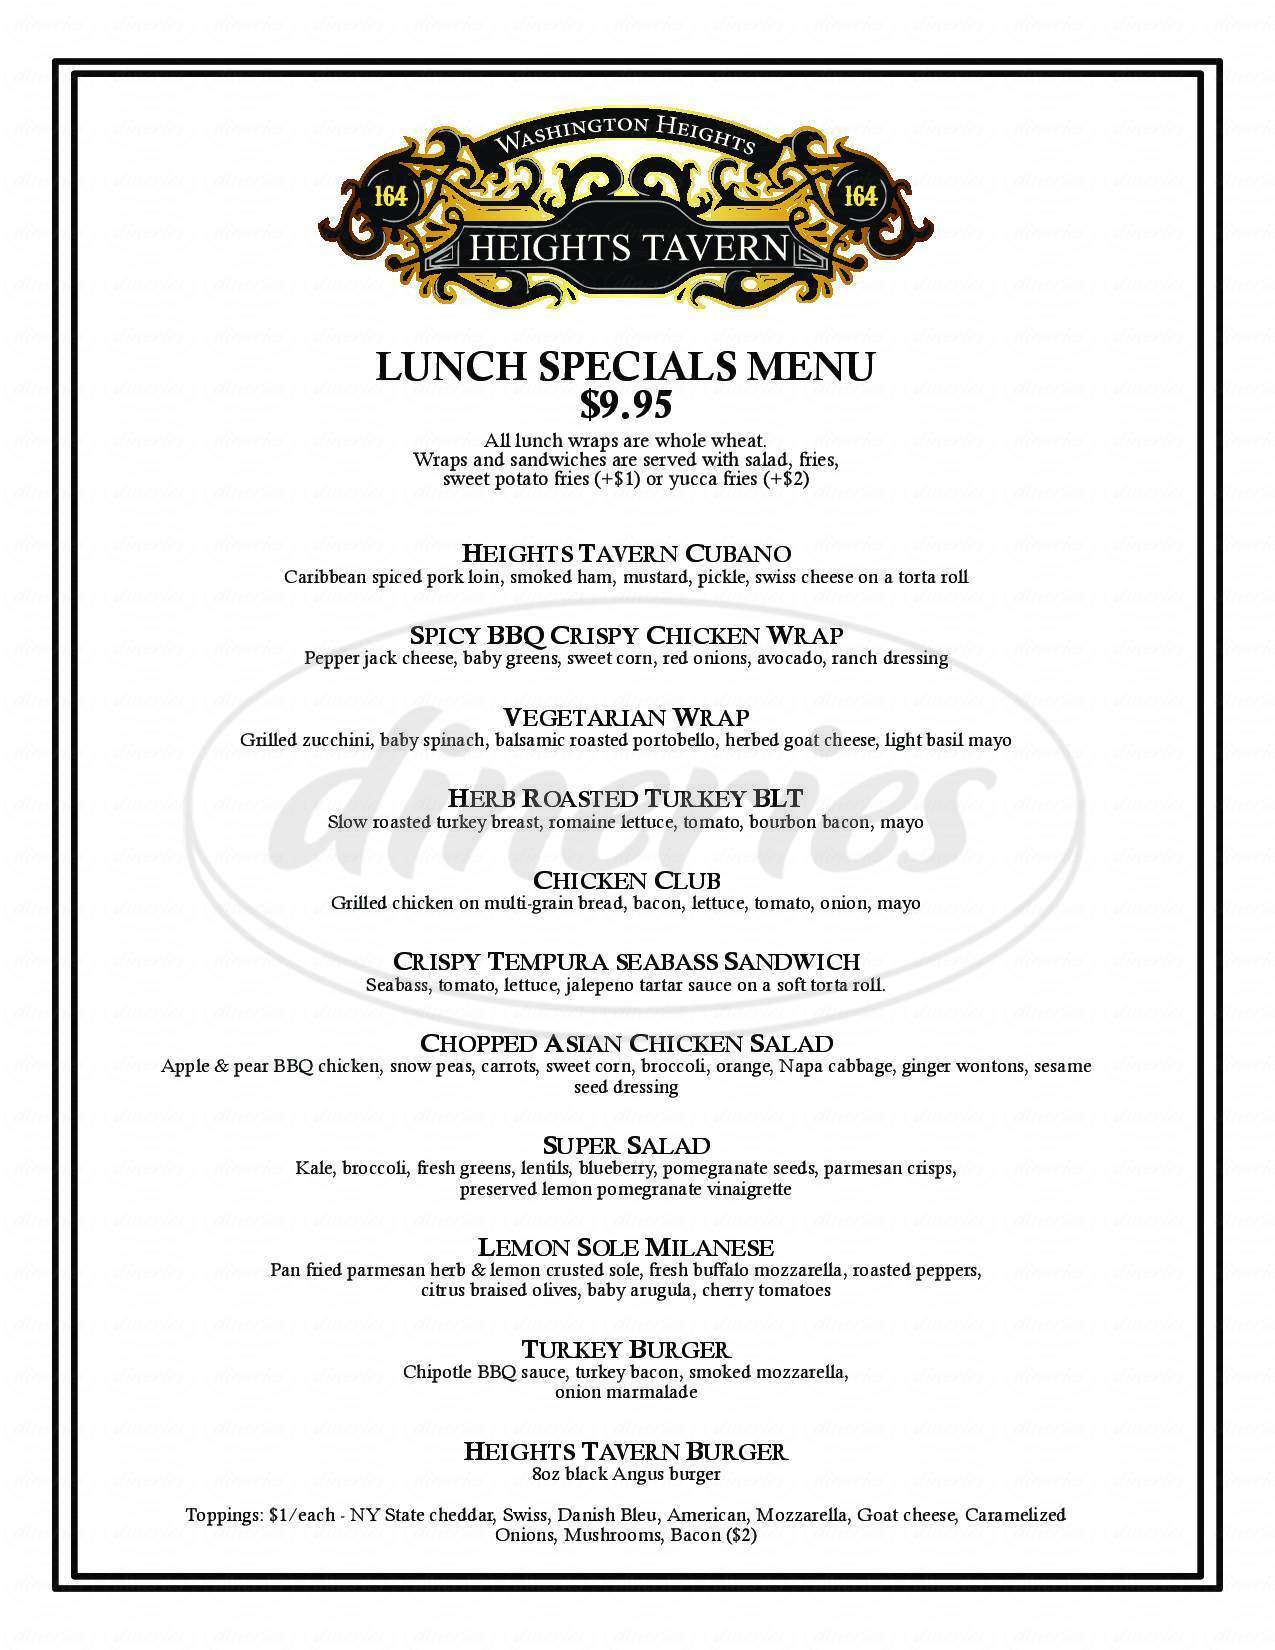 menu for Heights Tavern